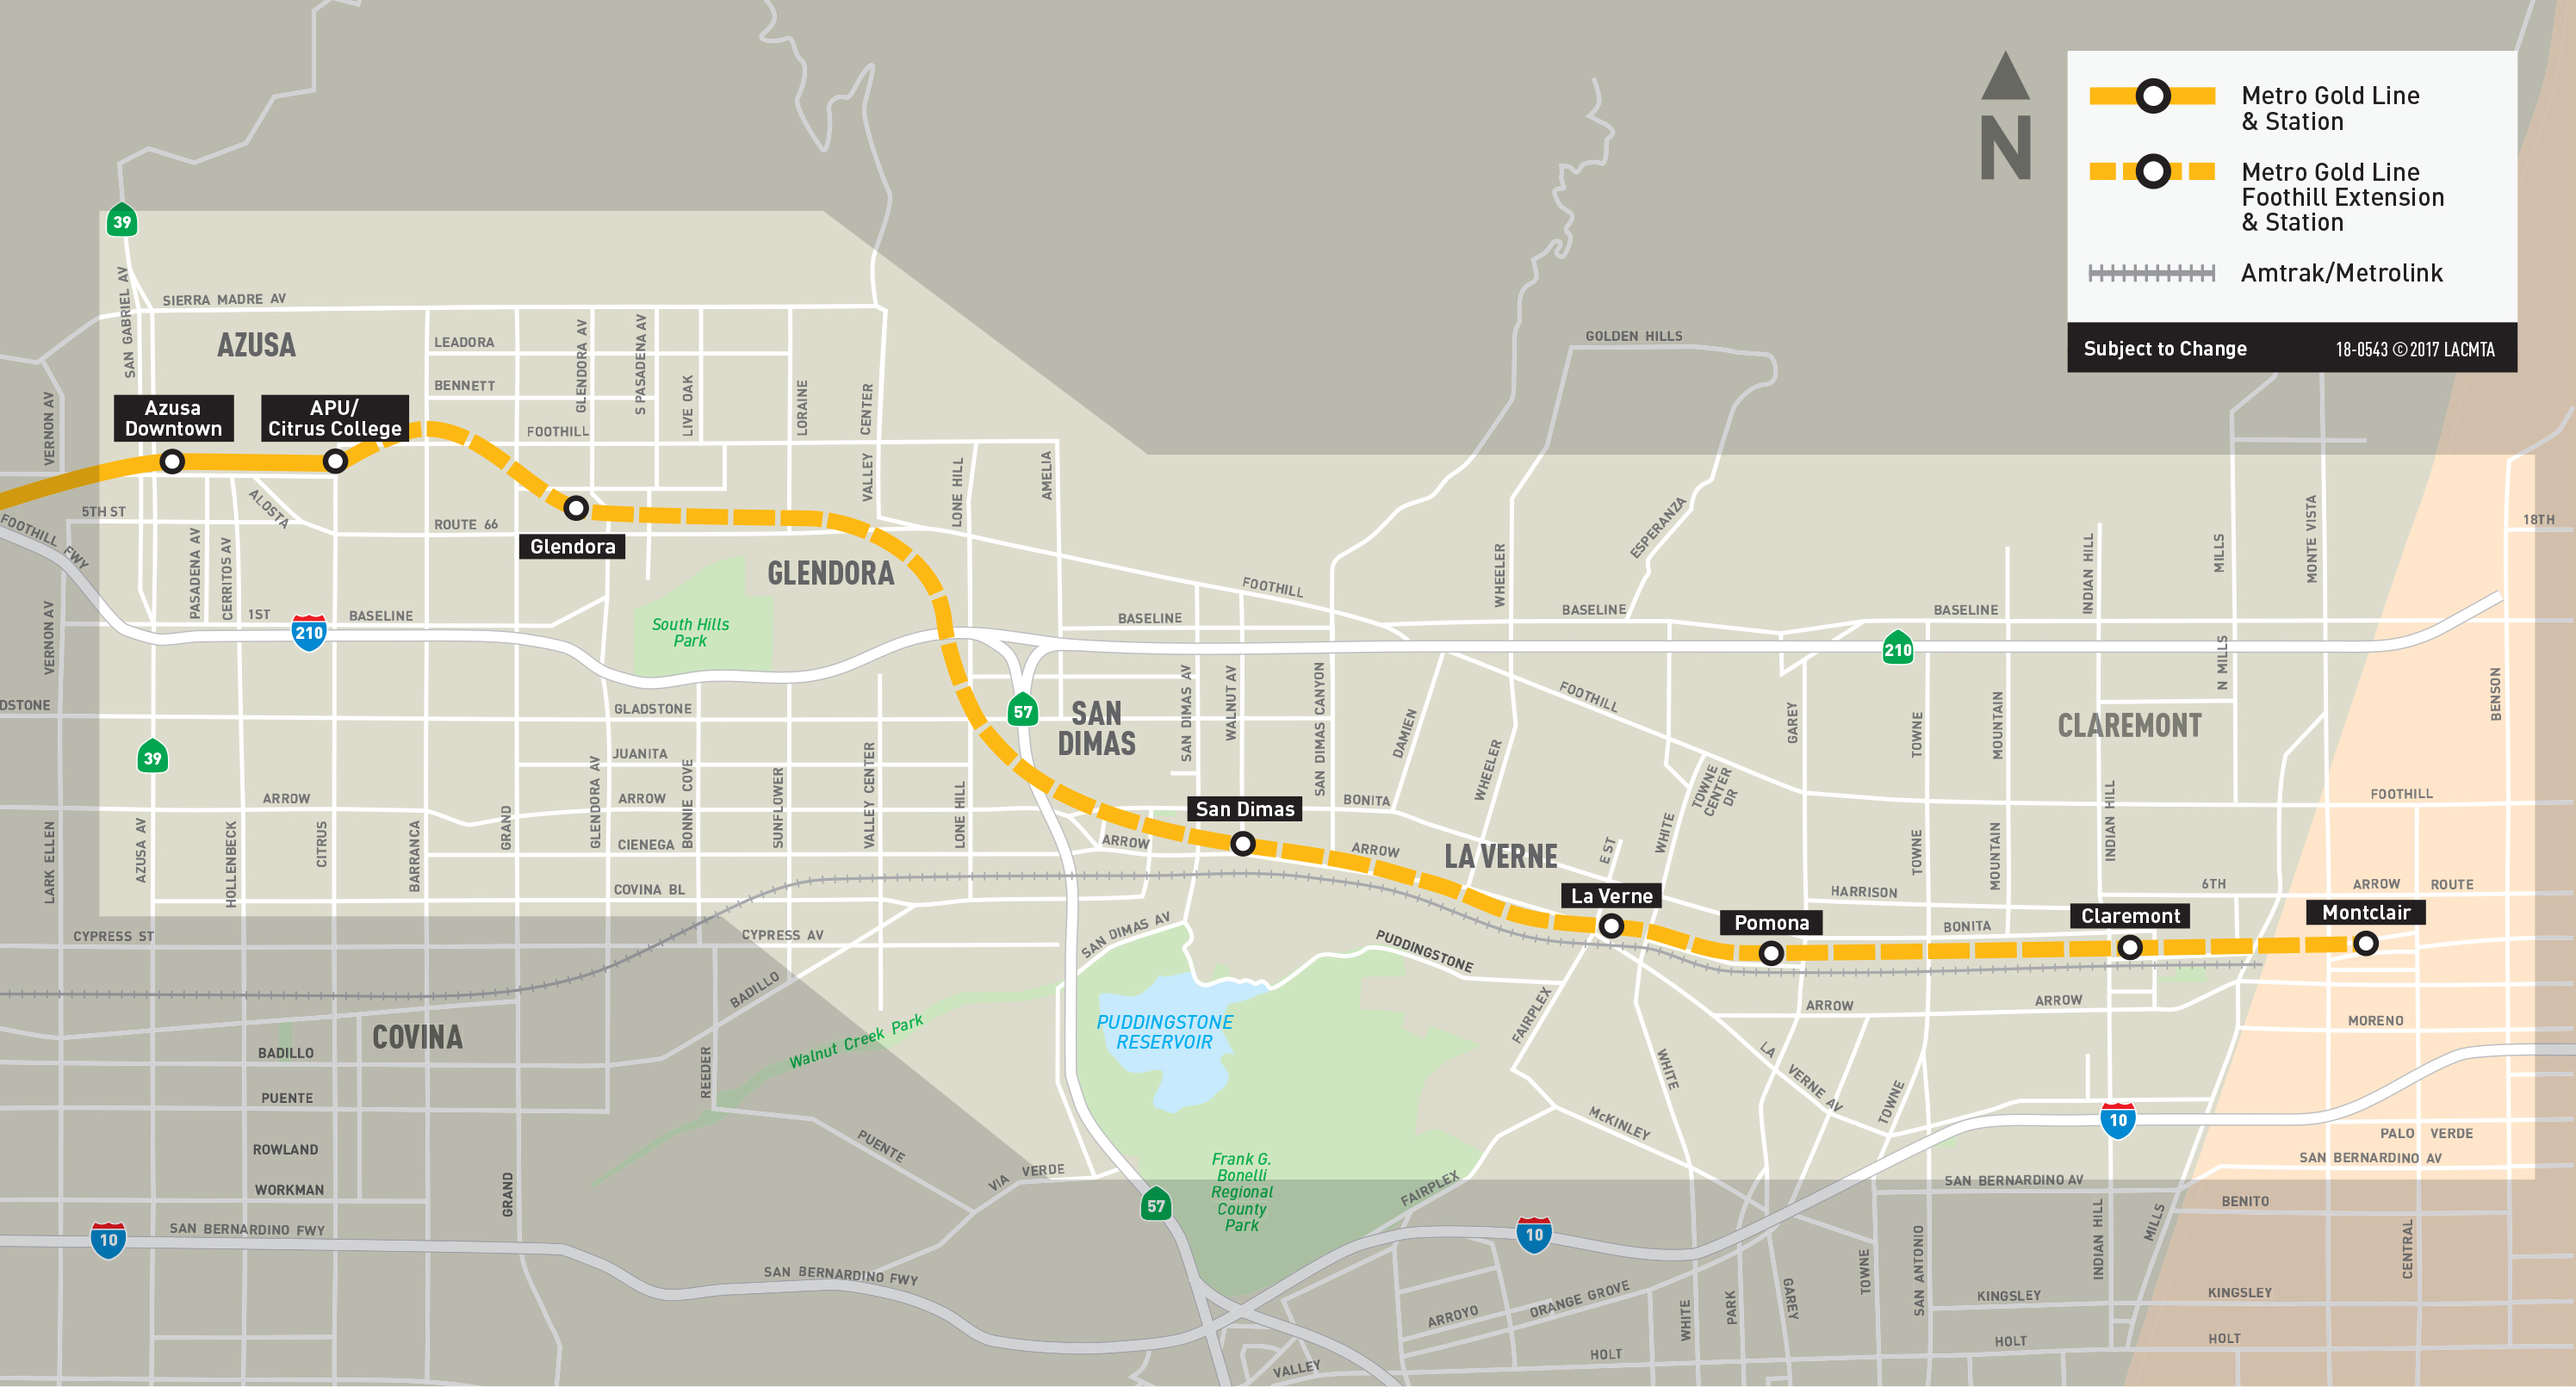 Metro Gold Line Extension Map New video: take an aerial tour of the Gold Line extension to